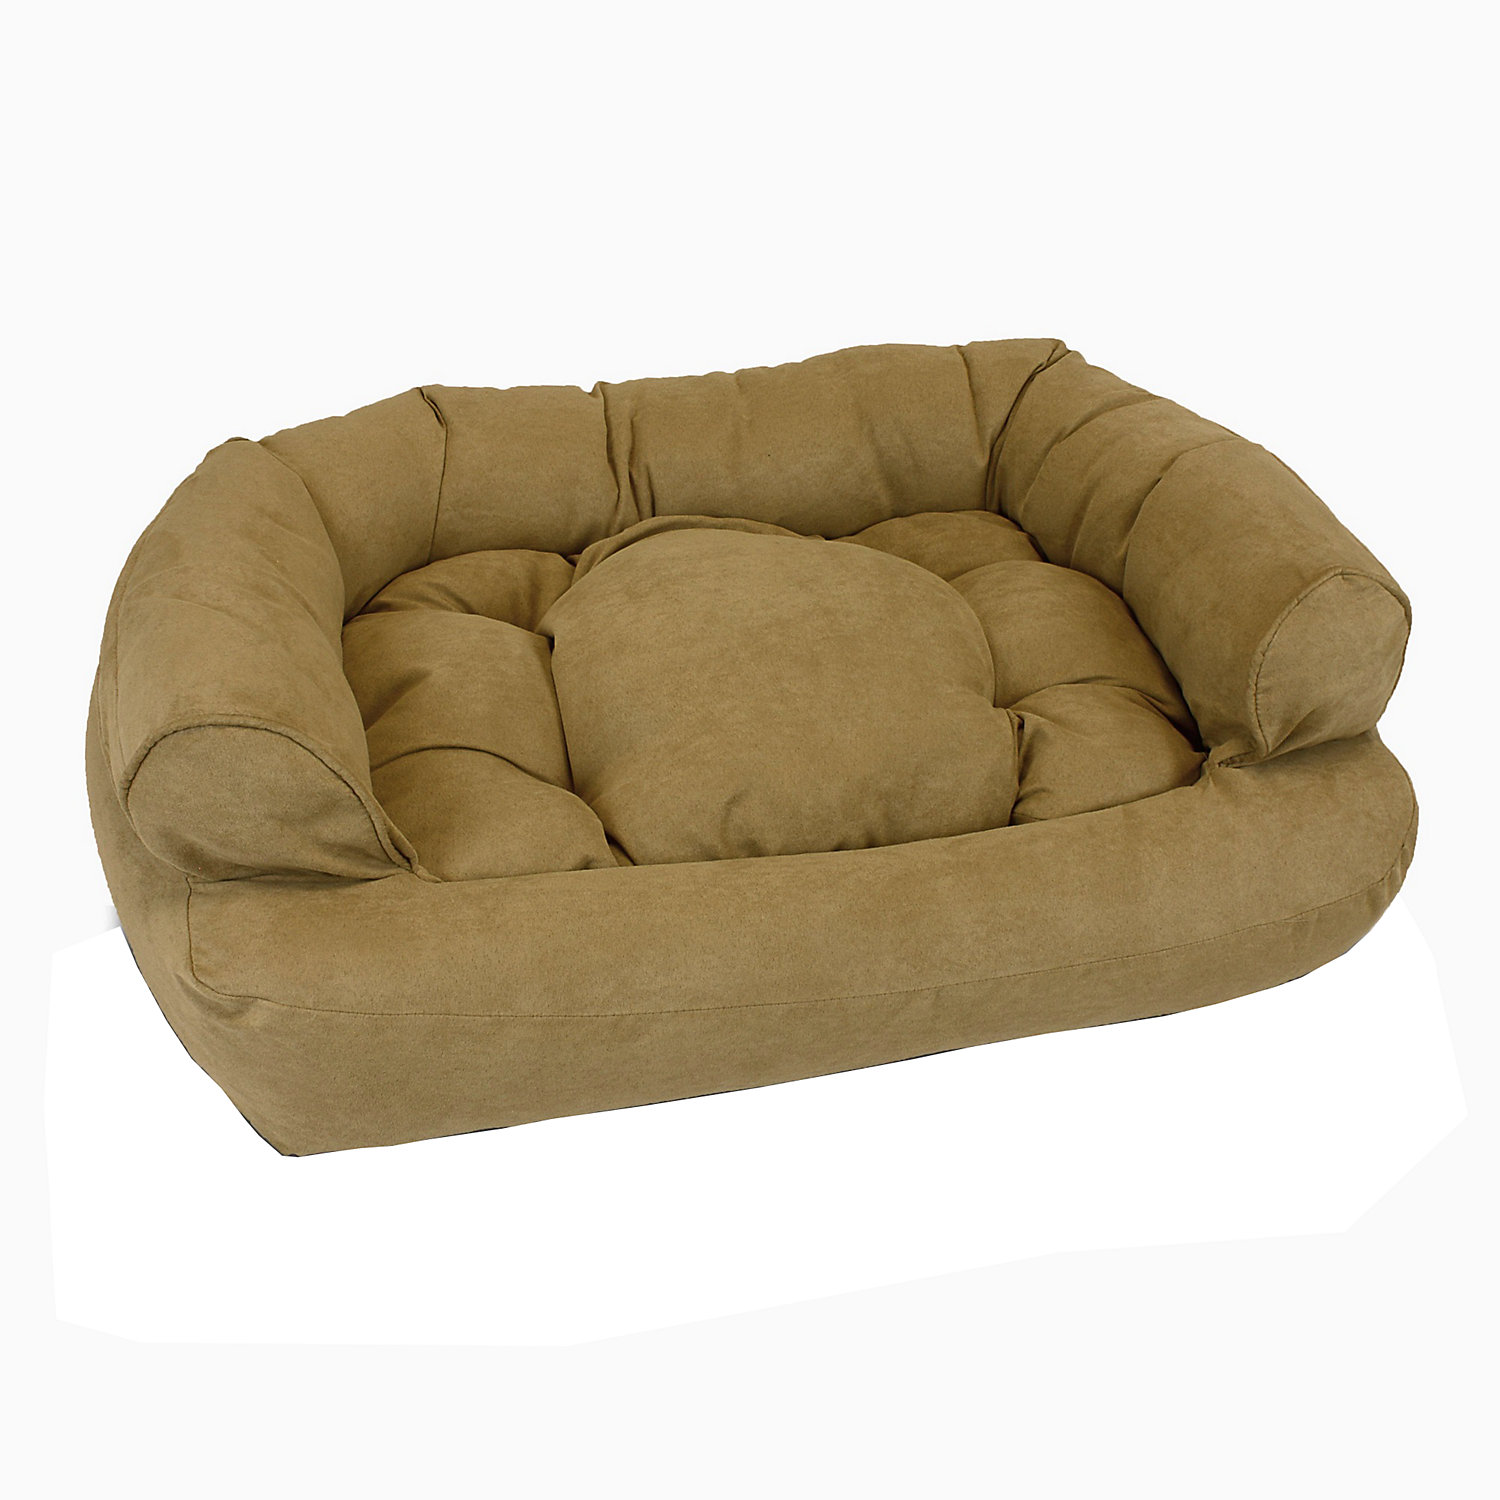 Snoozer Luxury Micro Suede Overstuffed Pet Sofa in Camel 36 L x 54 W XLarge